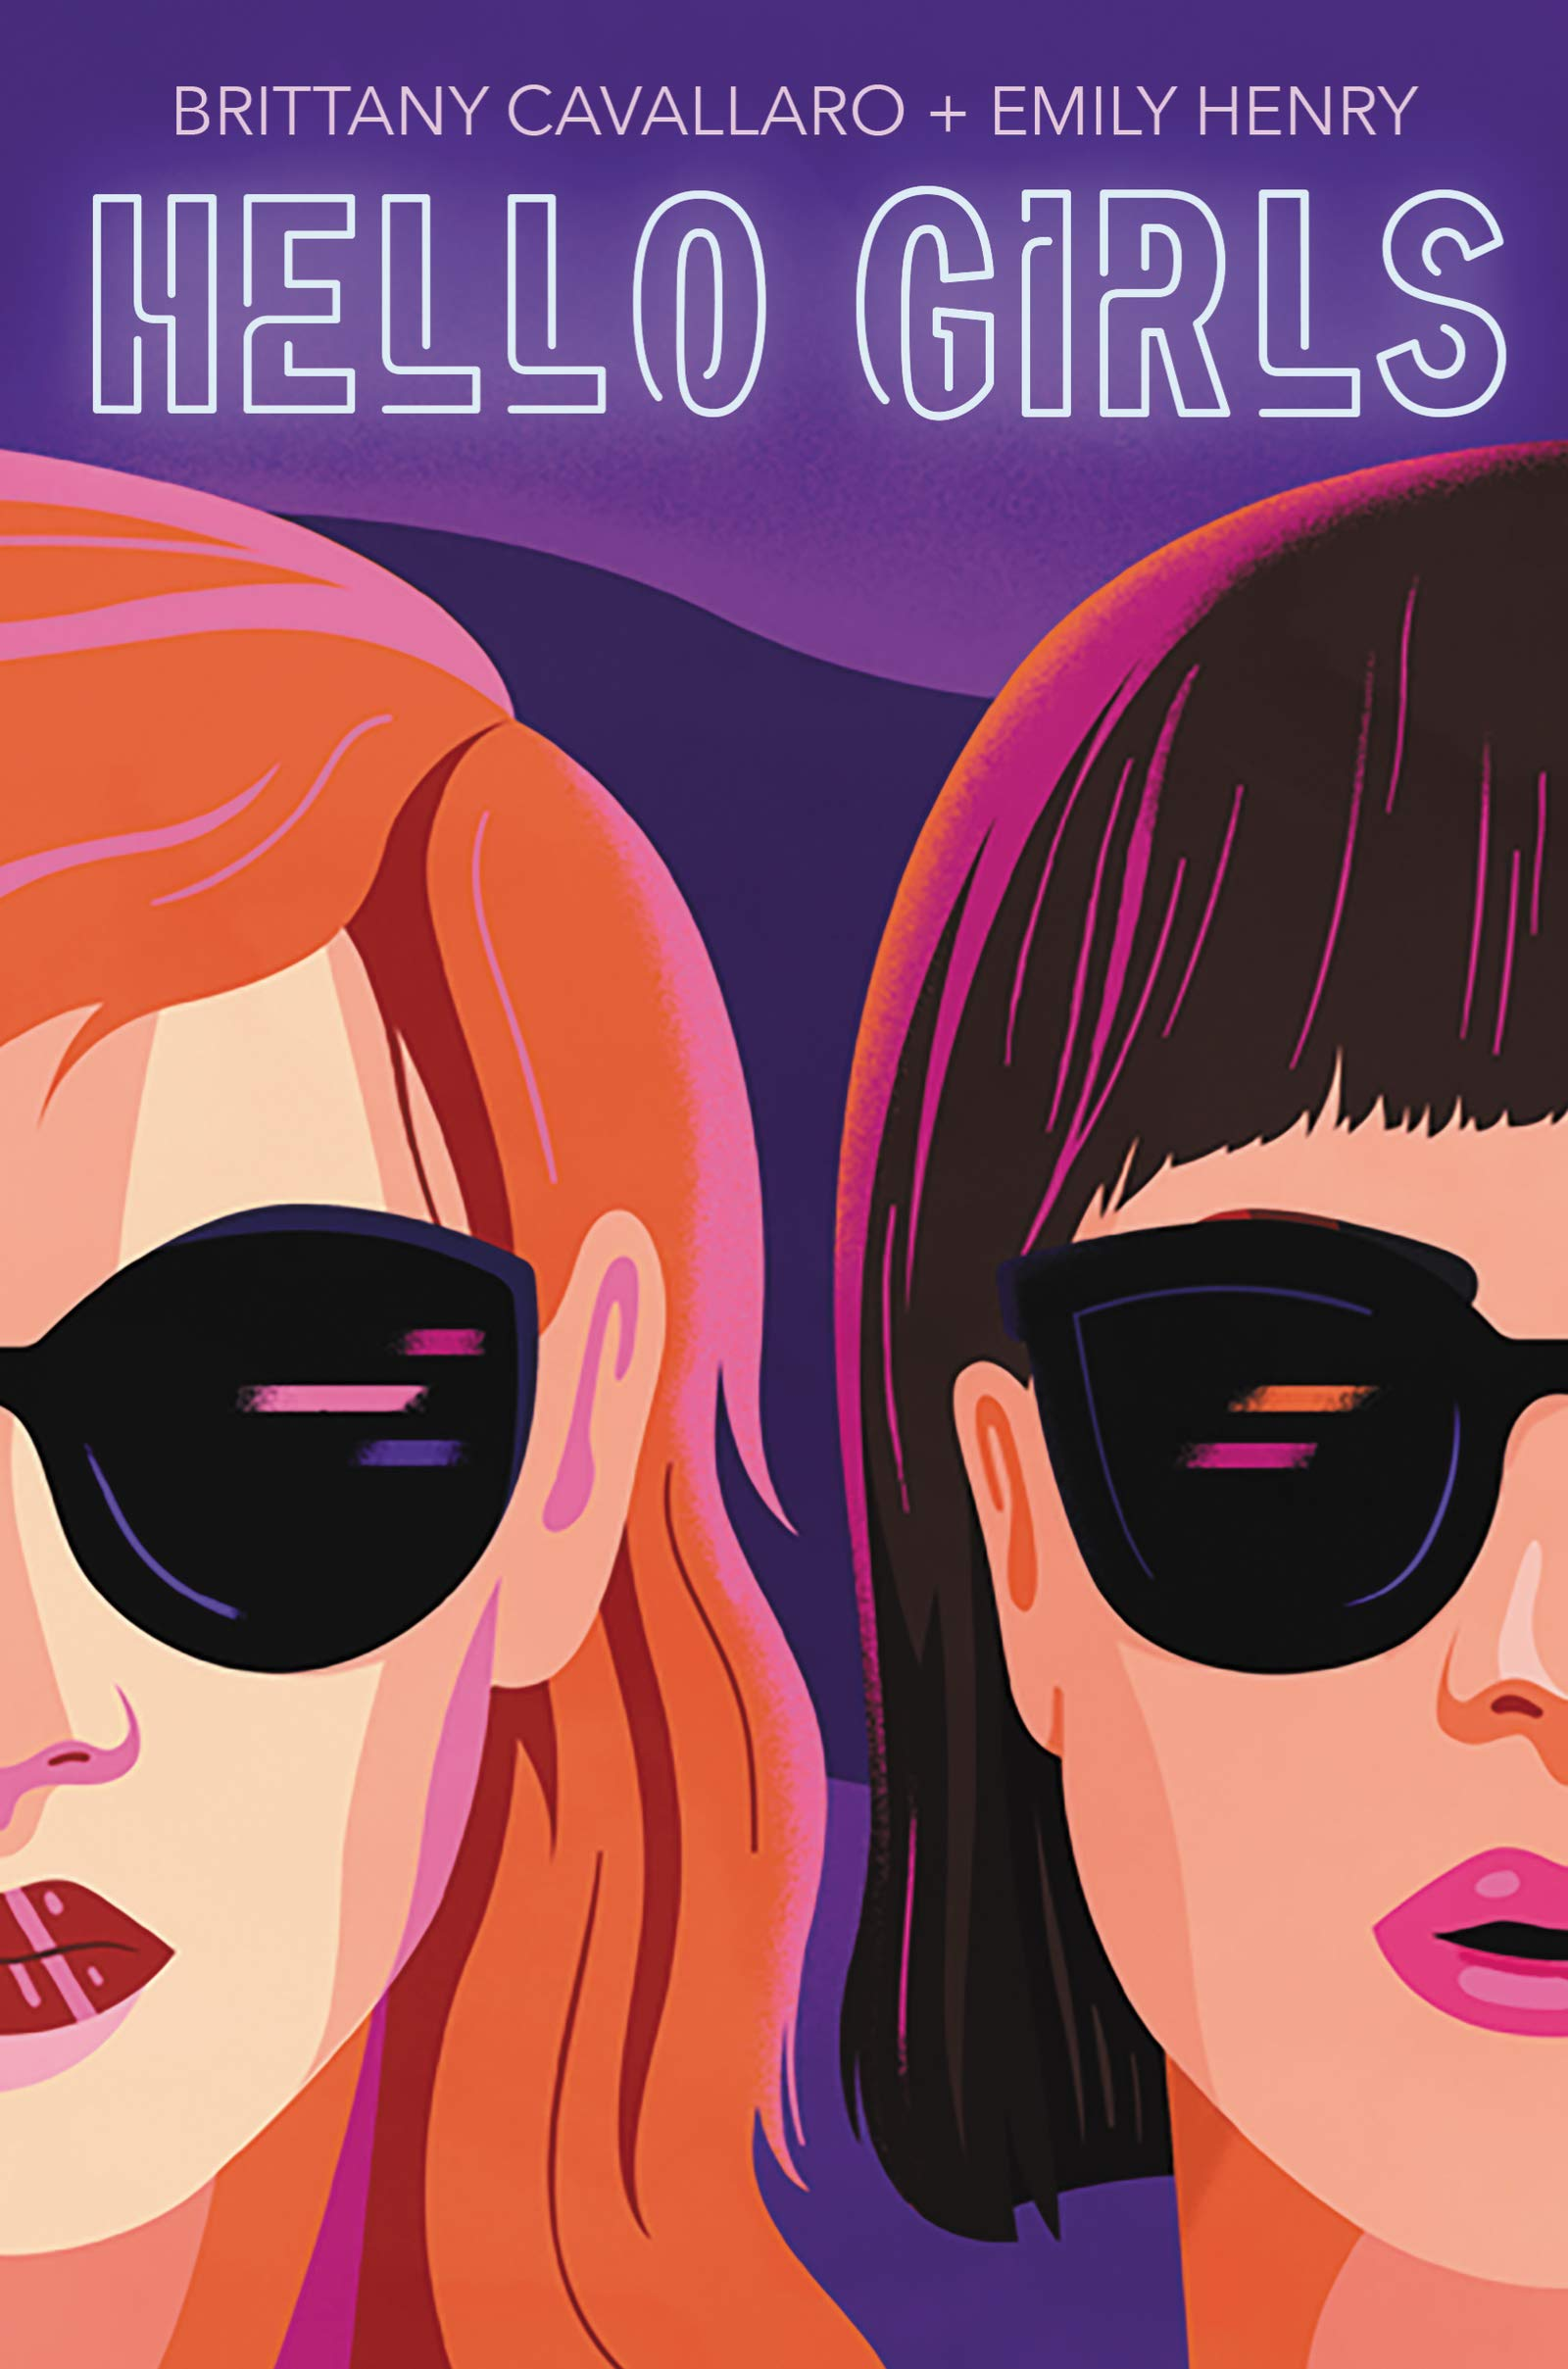 Book cover with the words 'hello girls' and an illustration of two women wearing sunglasses